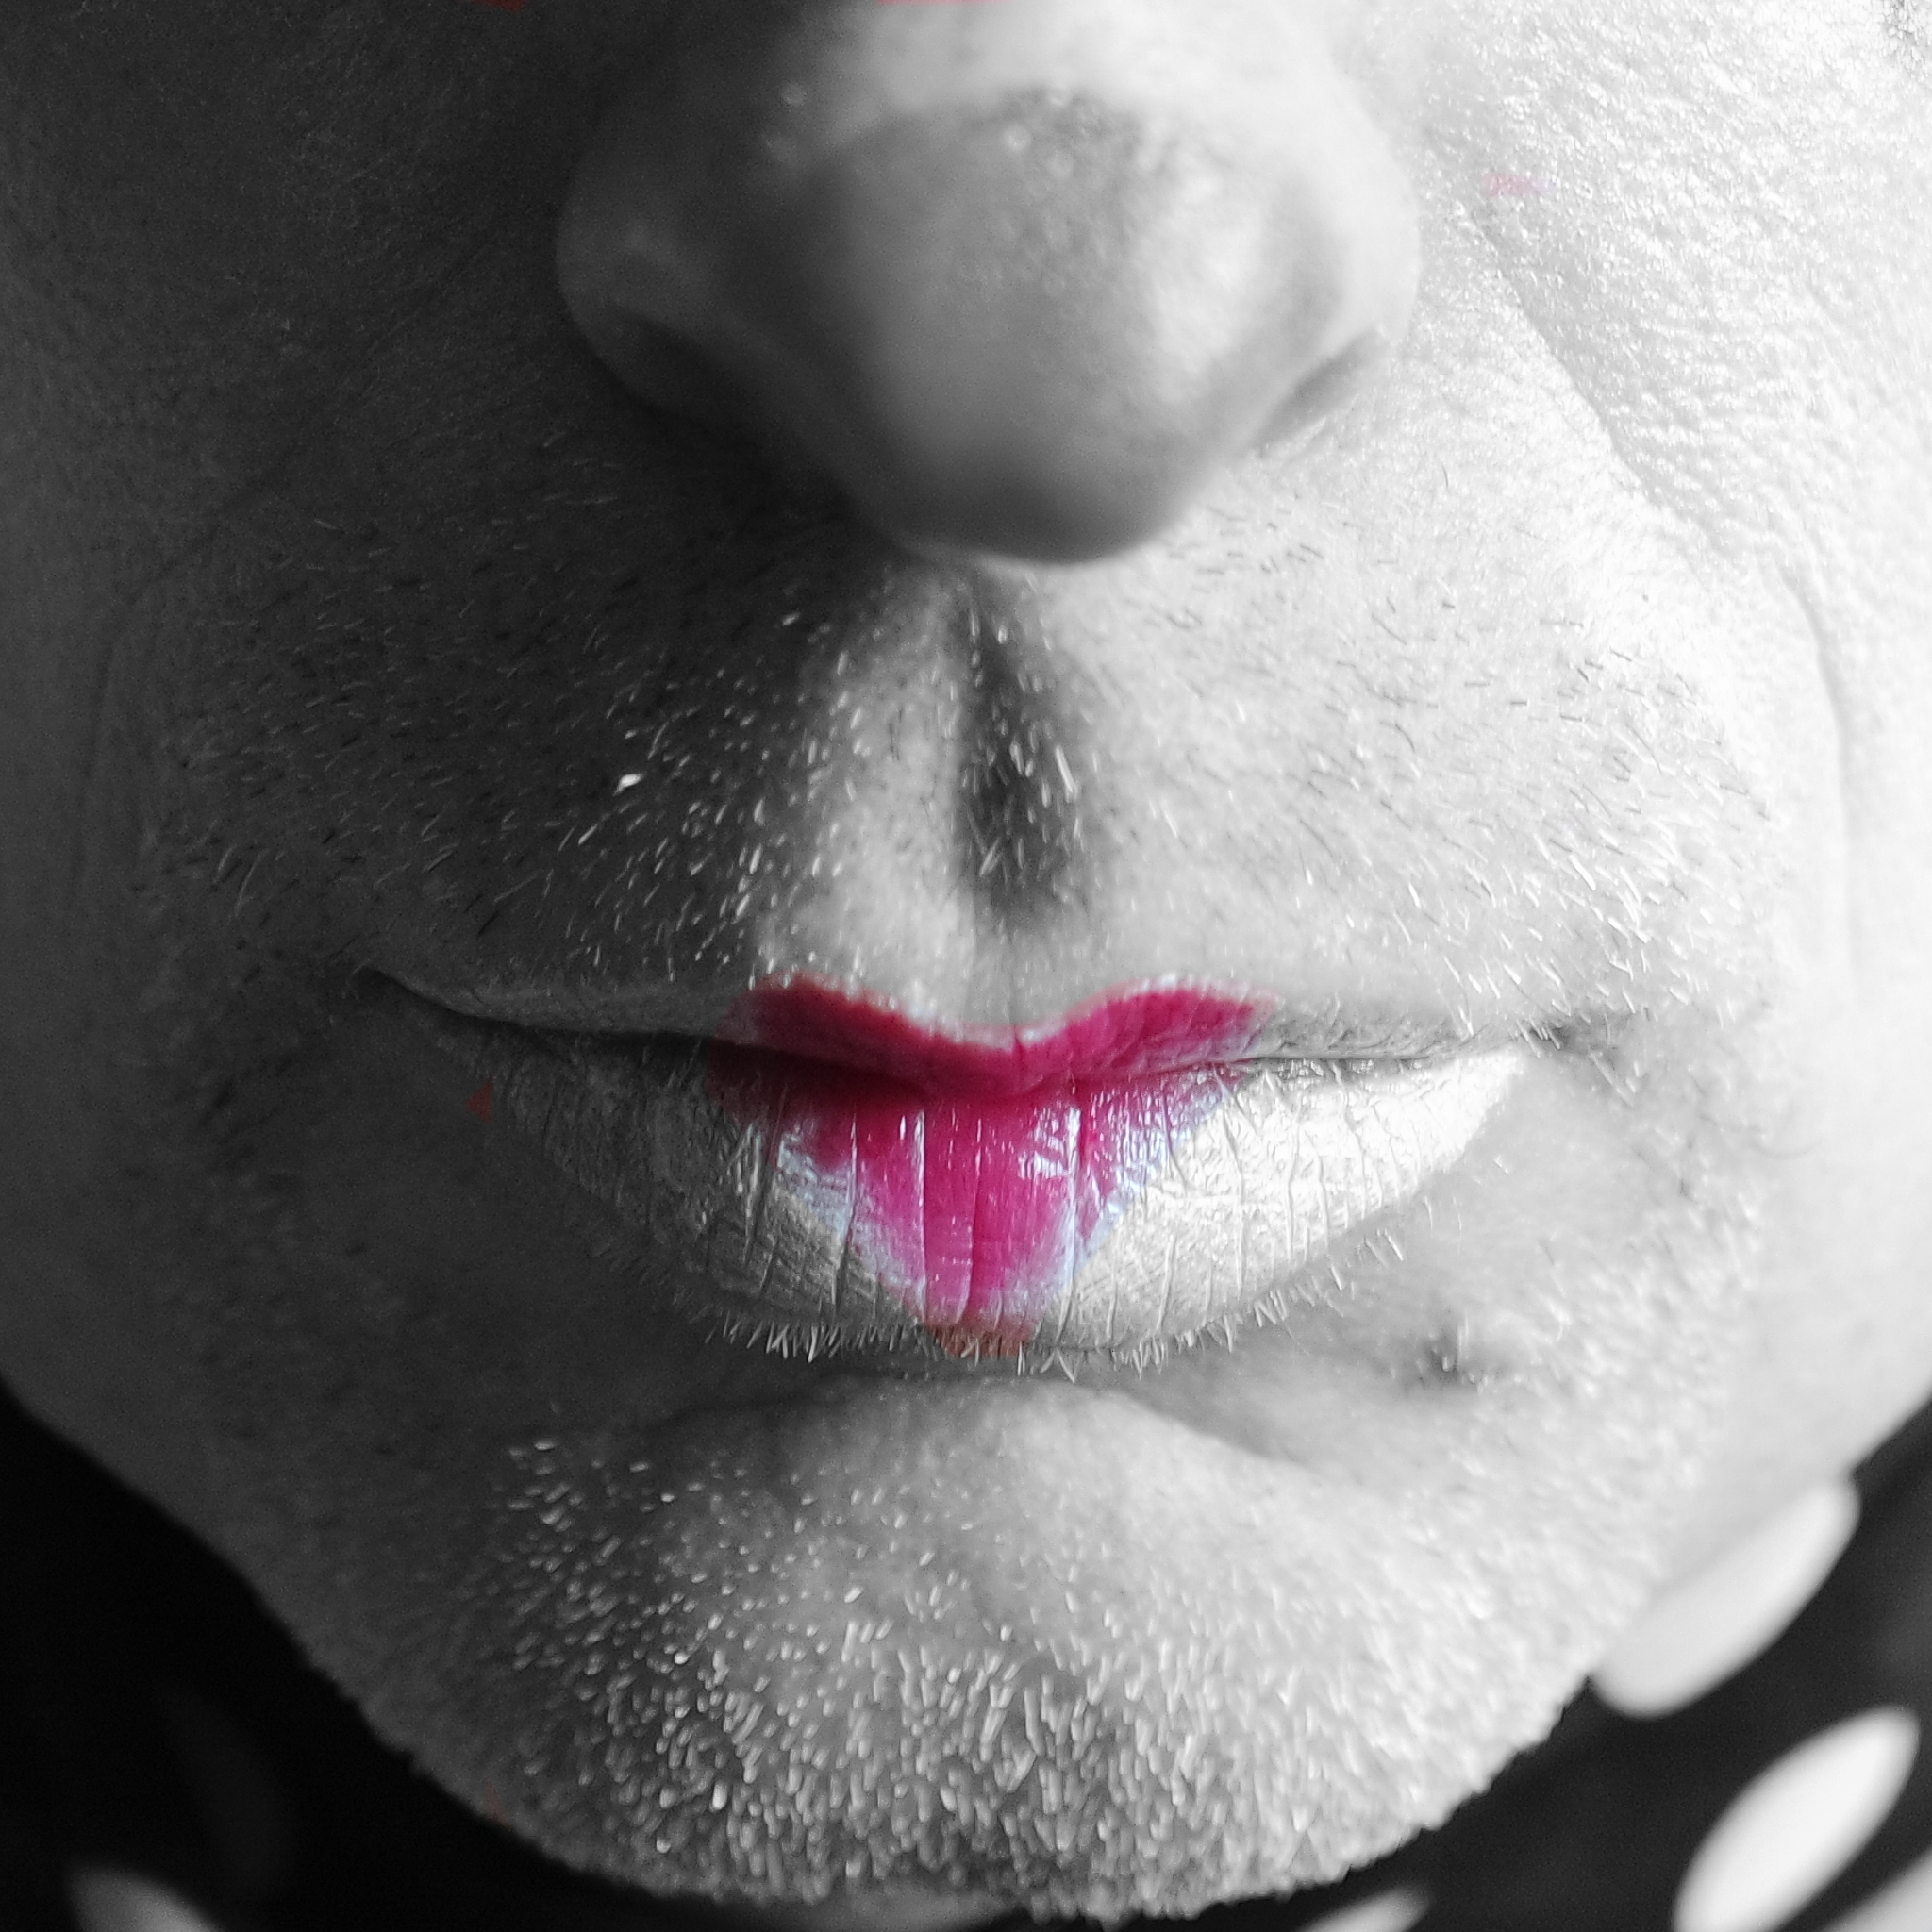 Sunday Selfie - 'The Last Clowns II' - Visible Word - photograph (c) David Bailey (not the)